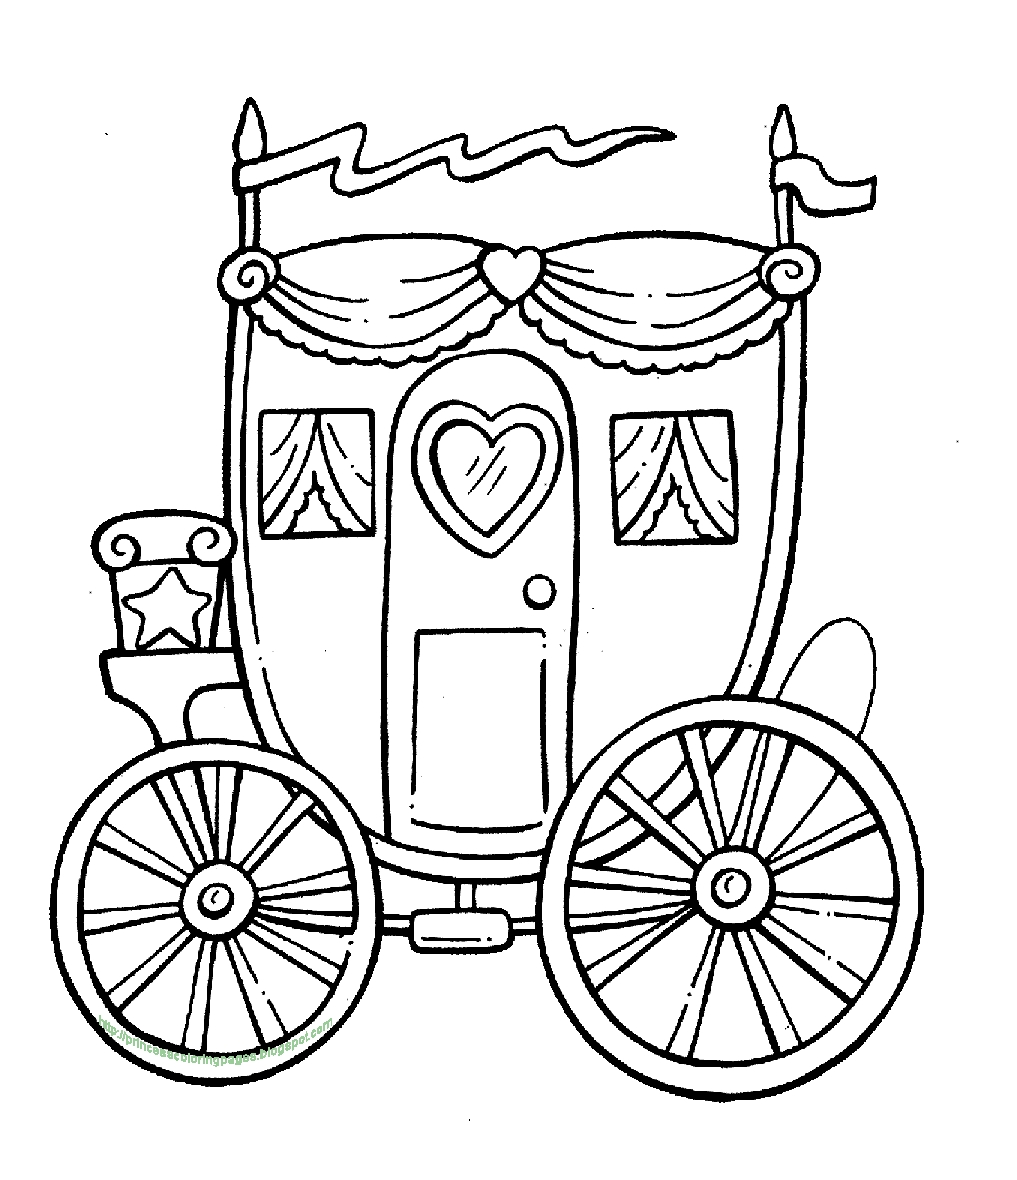 horse and buggy coloring pages horse and buggy coloring pages at getcoloringscom free horse buggy and coloring pages